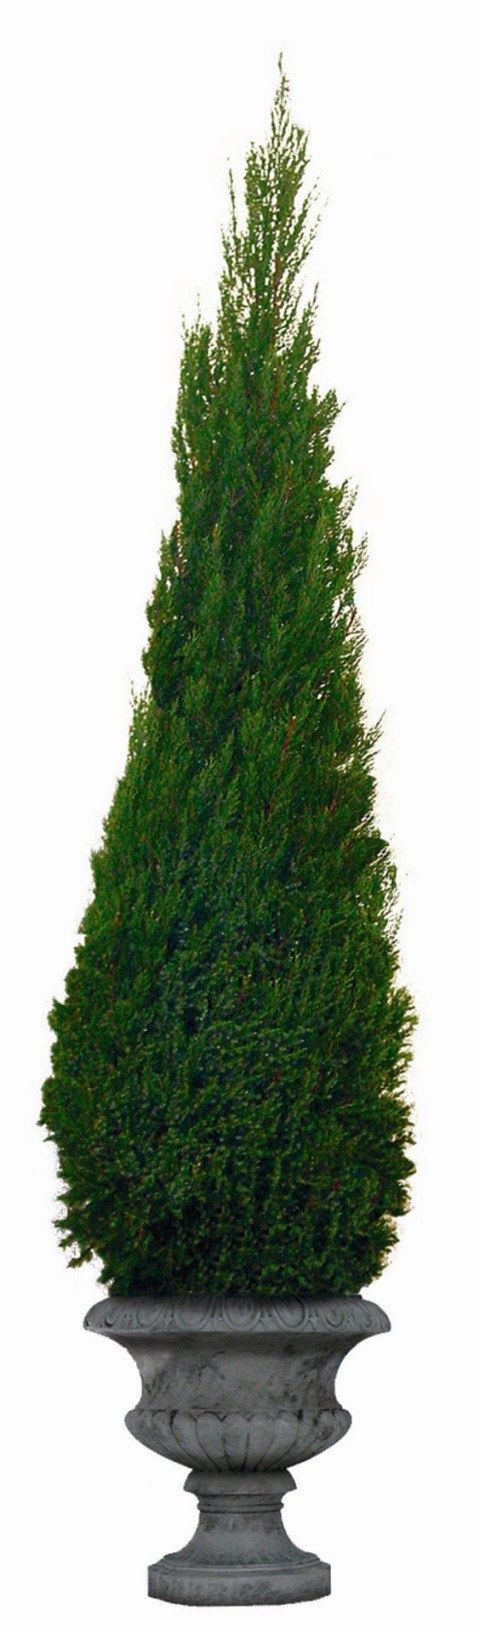 Preserved Cone Topiary 50 inch in Juniper Foliage